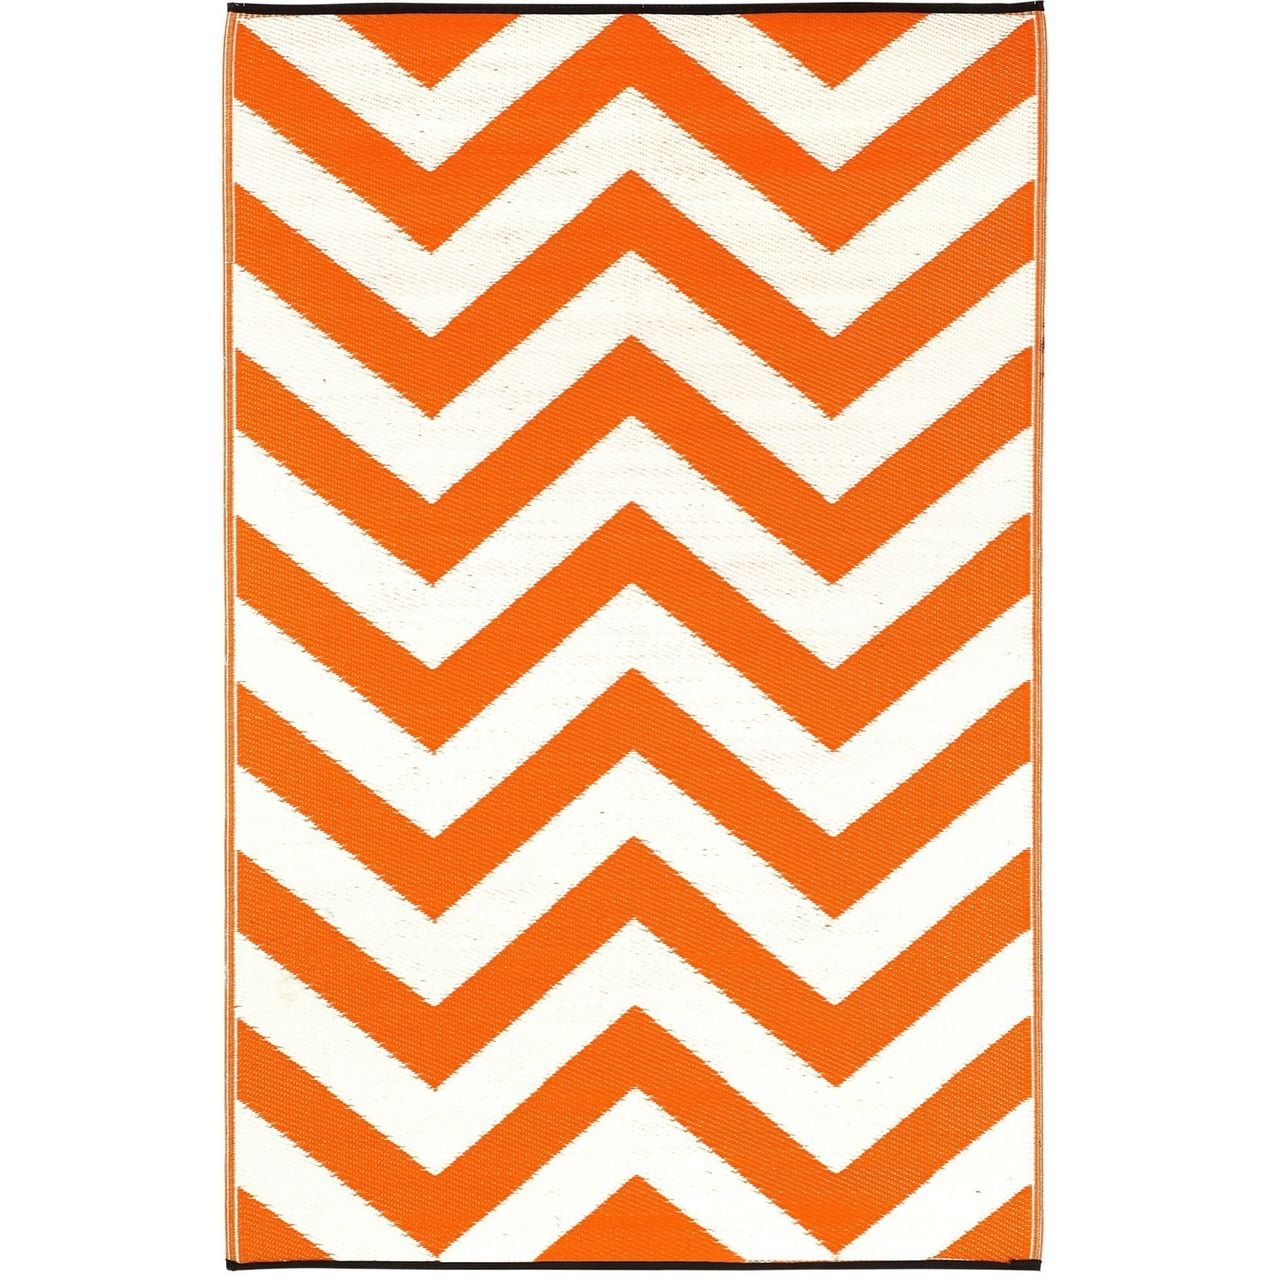 5' x 8' Indoor / Outdoor Area Rug with Orange White Chevron Pattern - Quality House